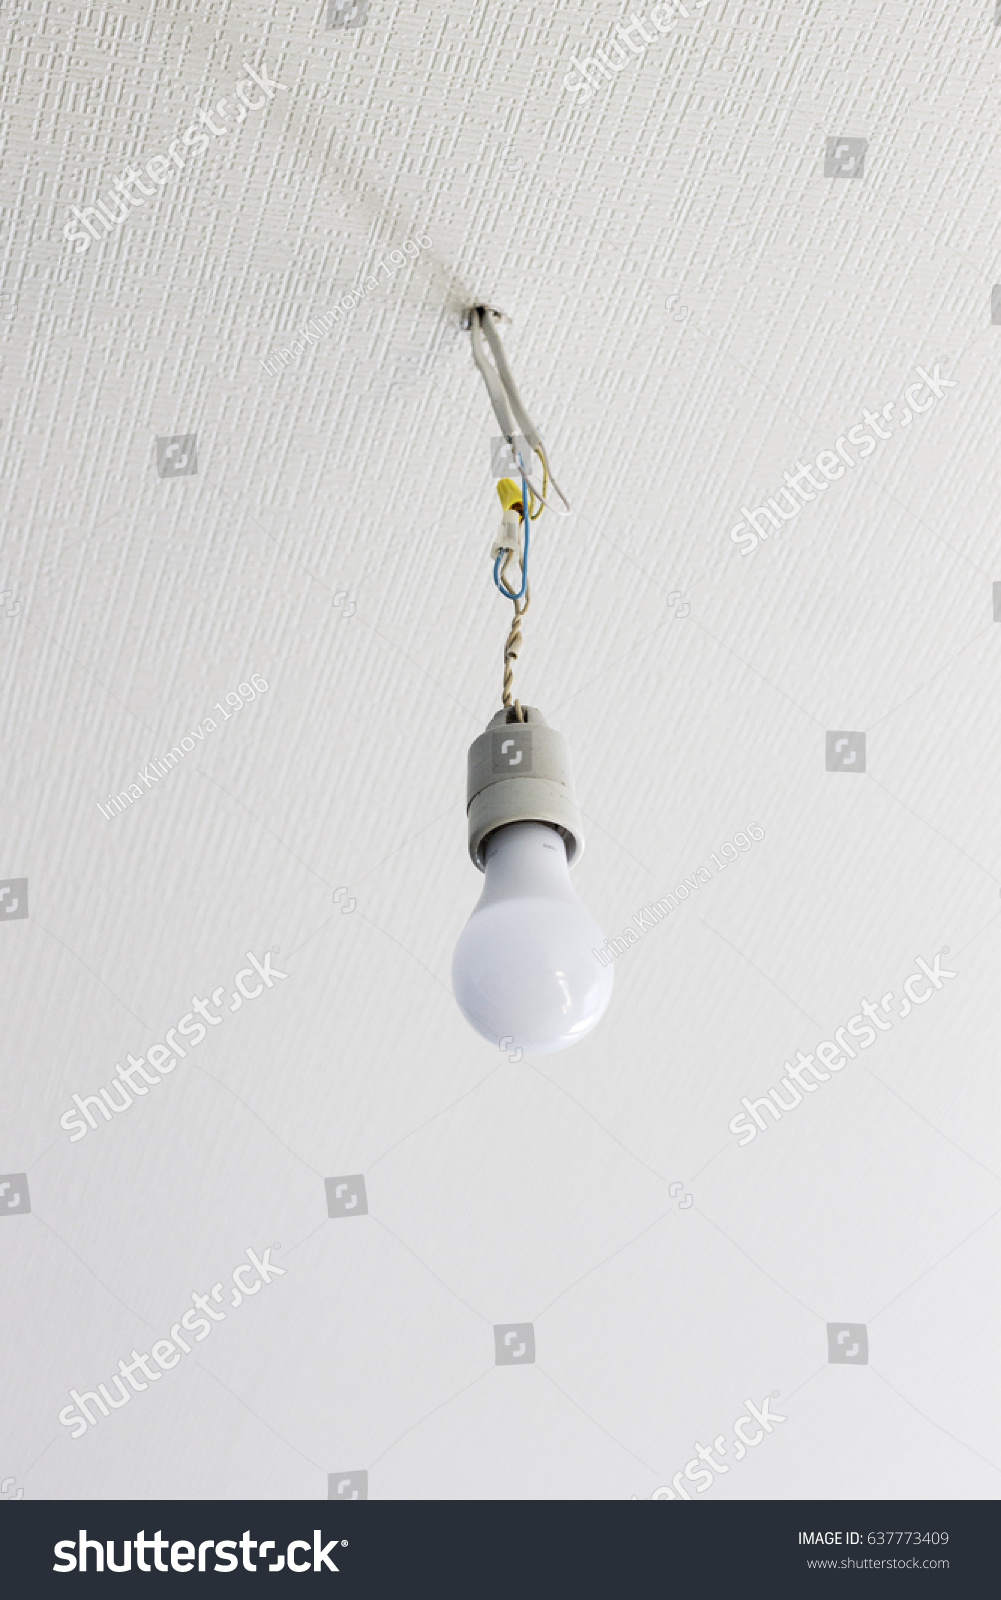 White Bulb Hanging White Ceiling On Stock Photo (Royalty Free ...